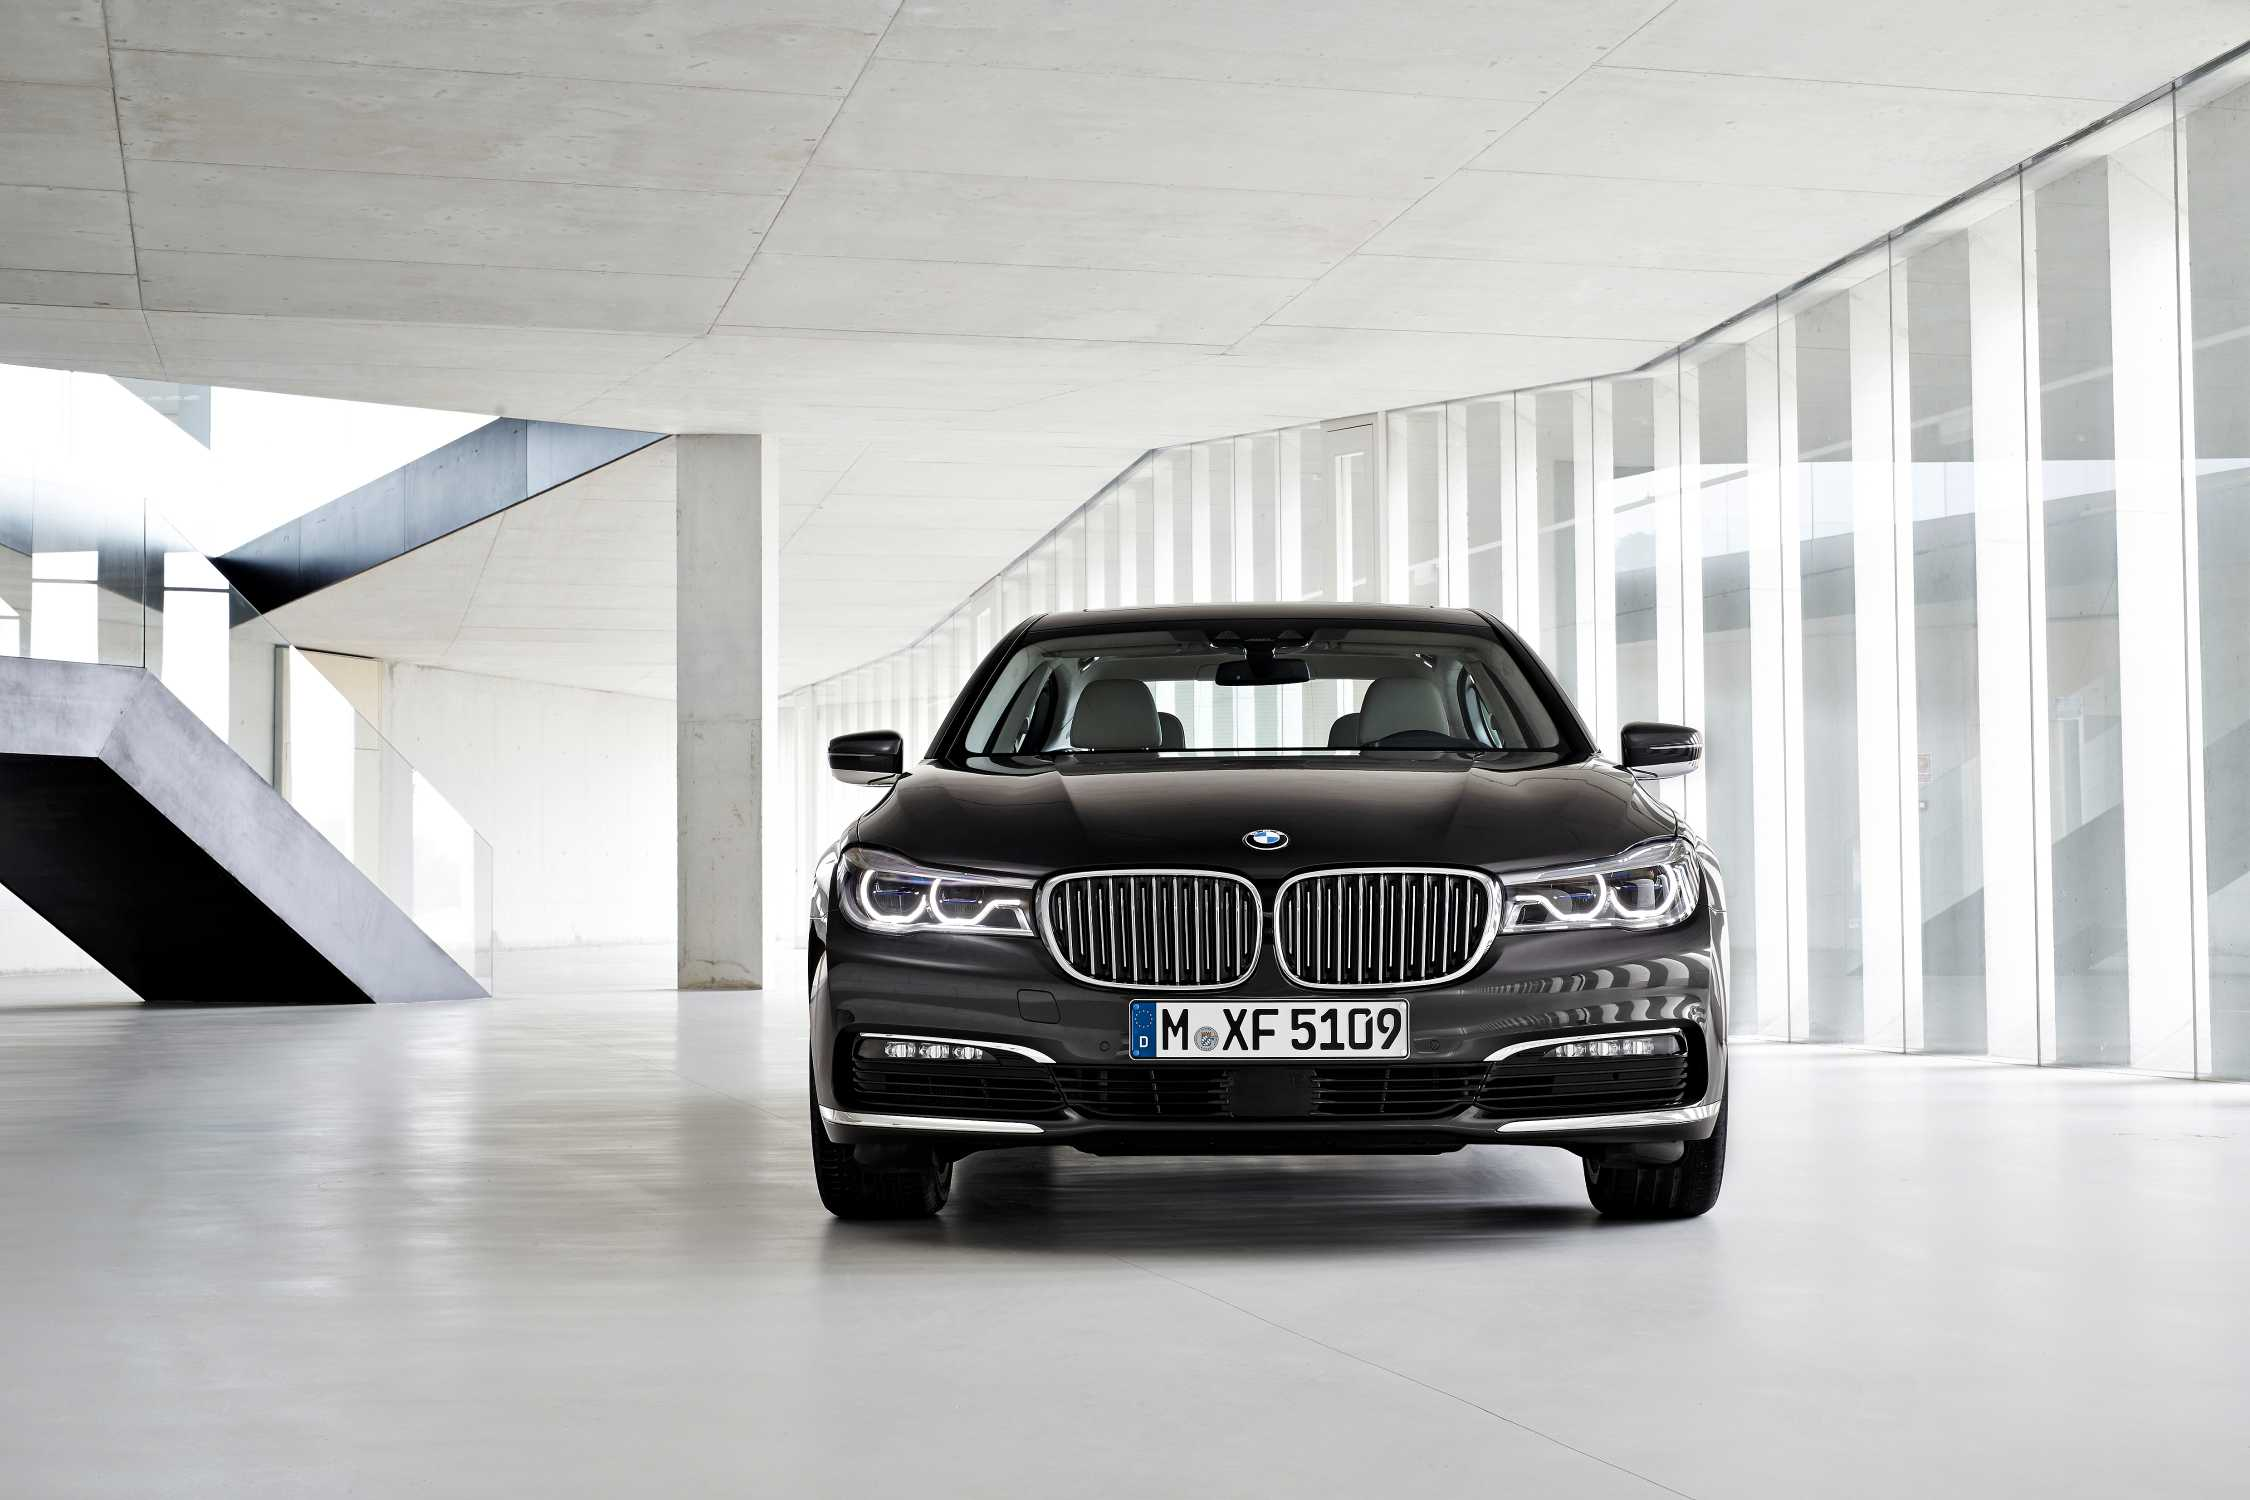 2021 BMW 7 Series Perfection New Images